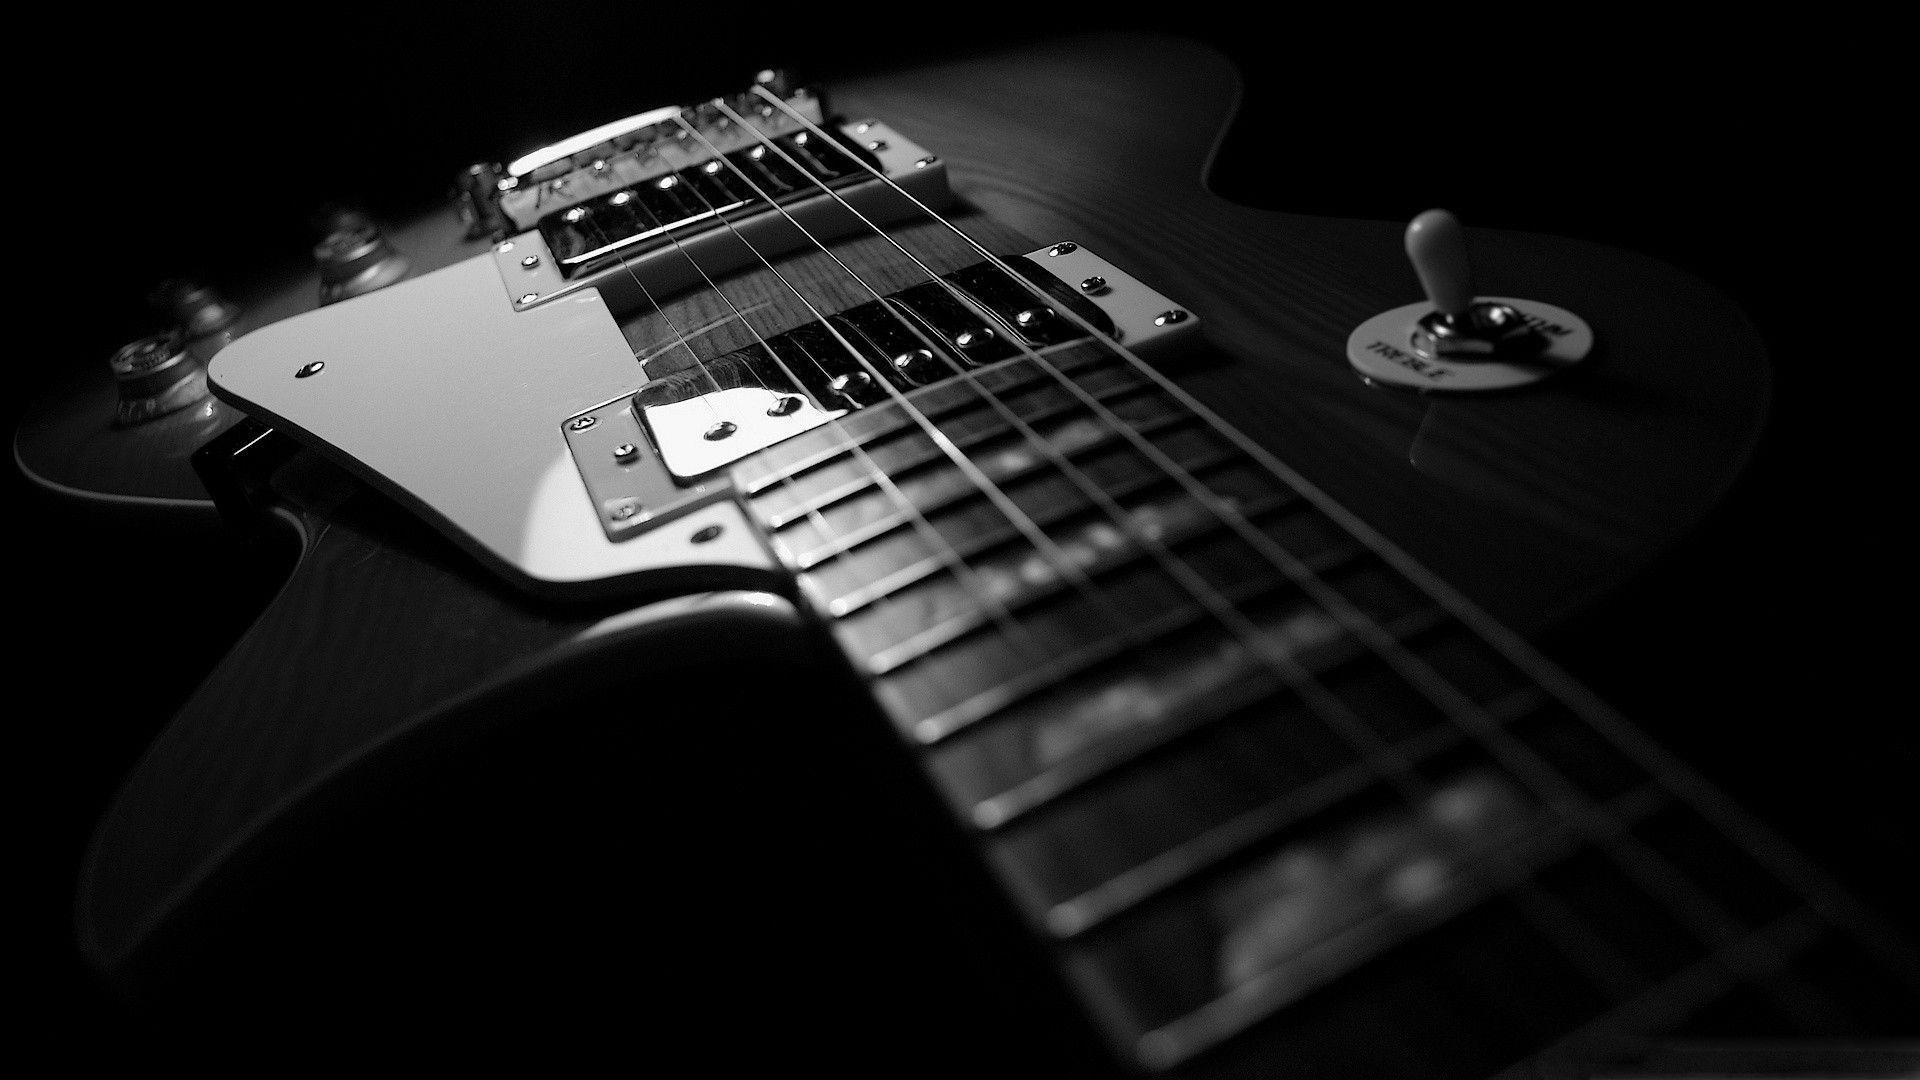 451 Guitar Wallpapers | Guitar Backgrounds